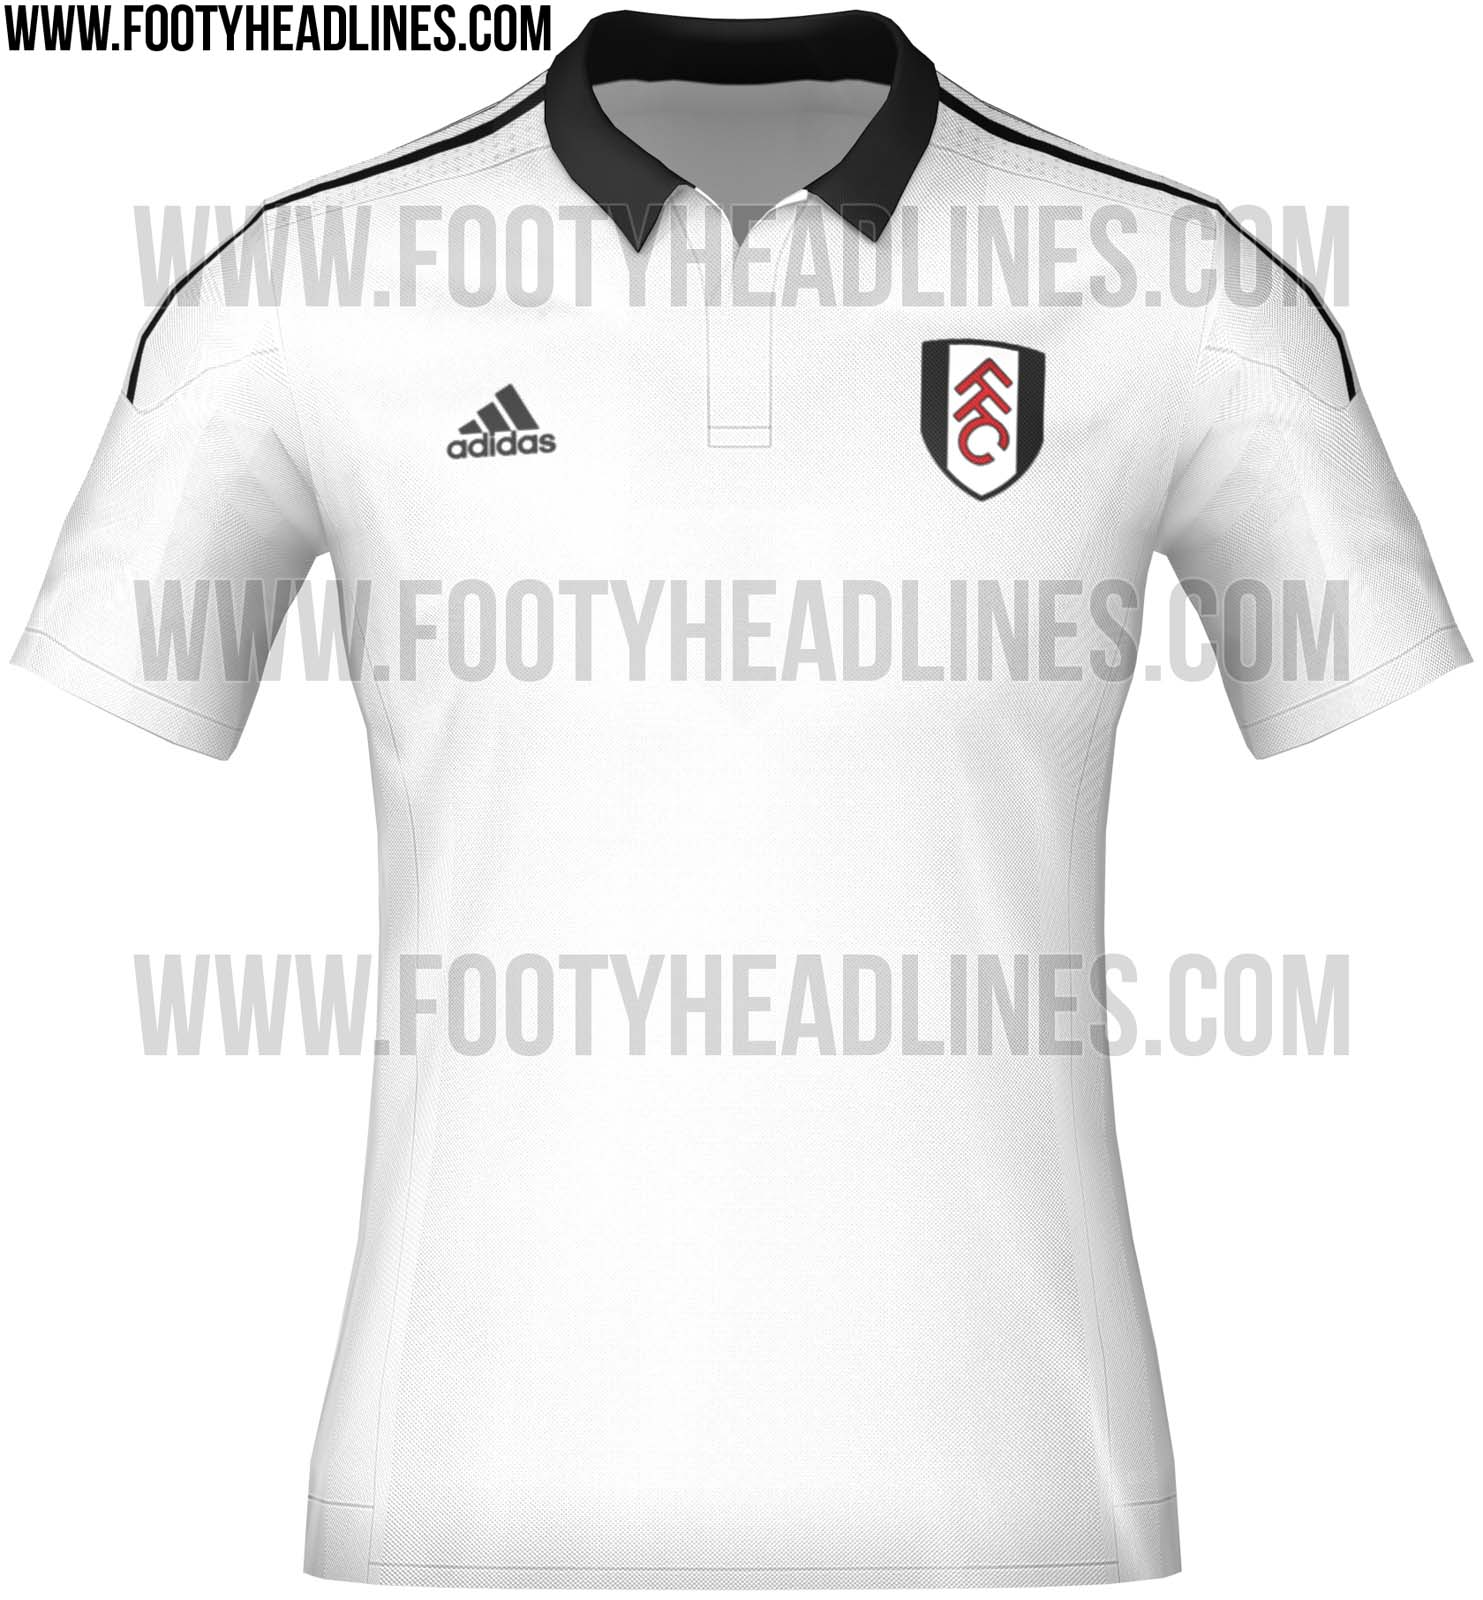 adidas-fulham-15-16-home-kit-1.jpg